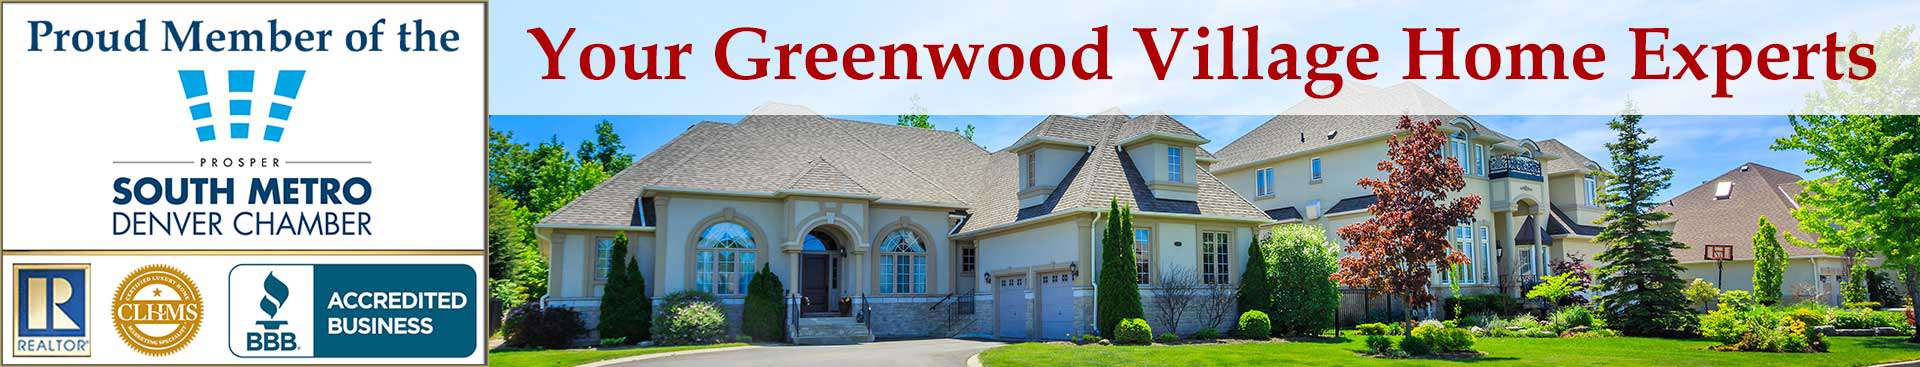 Greenwood Village CO Organizational Banner